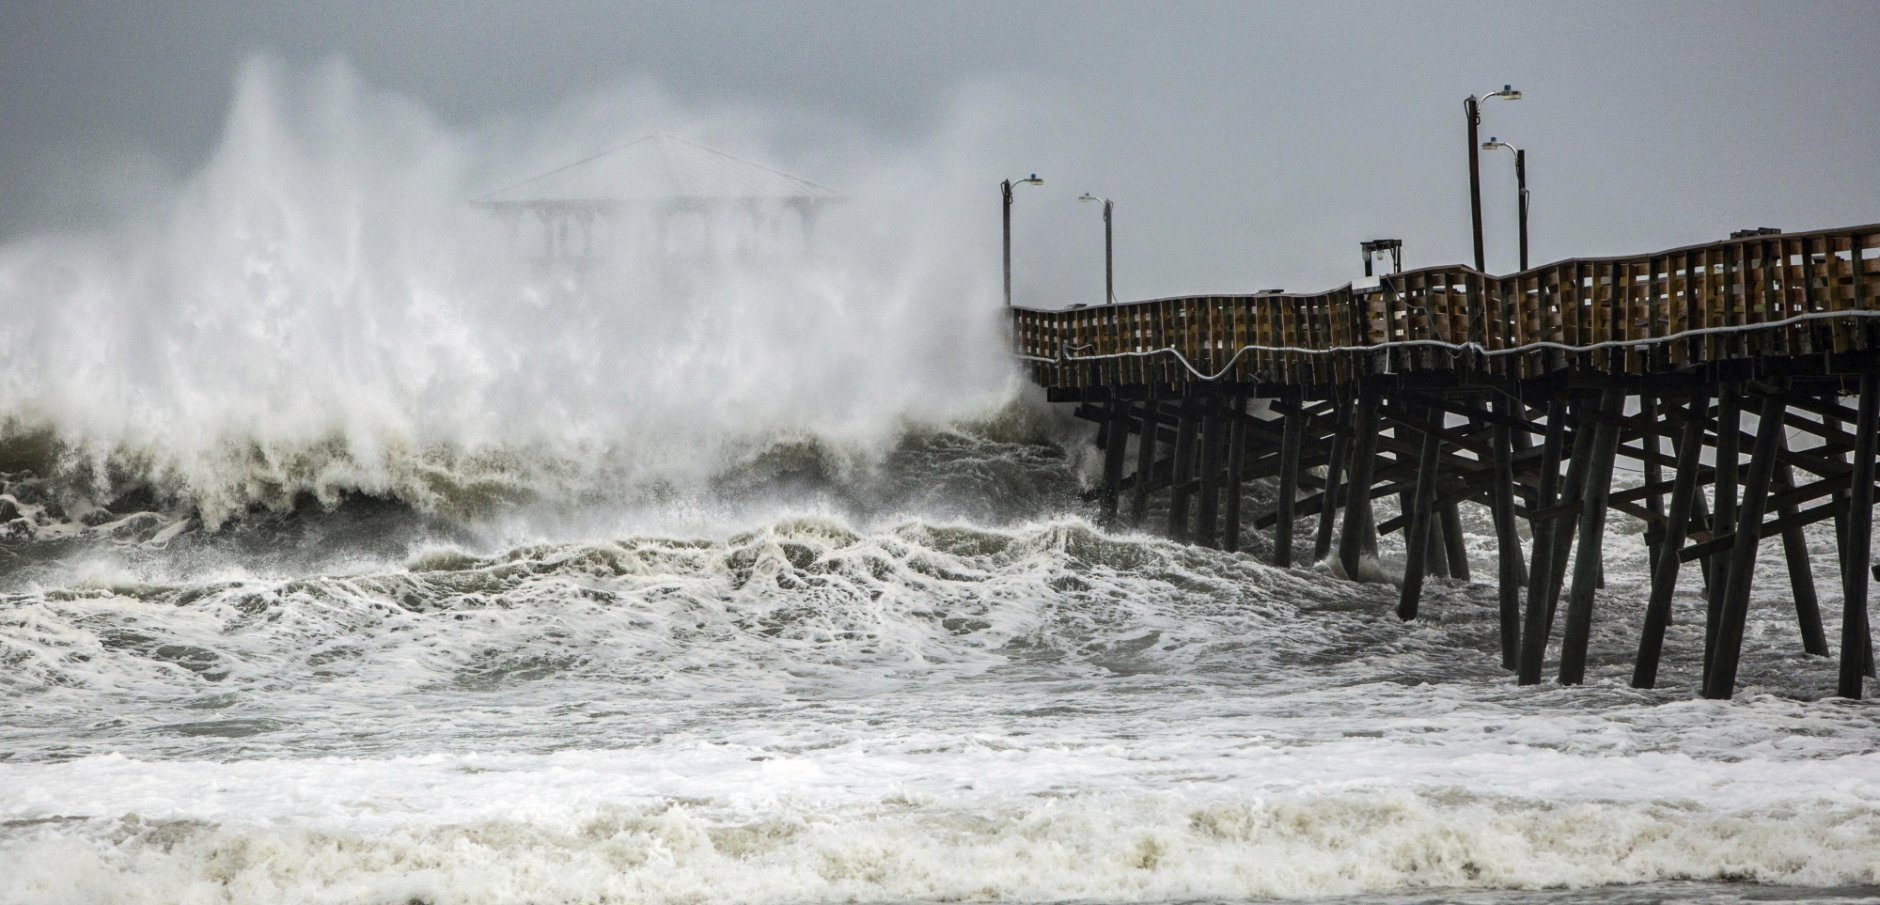 Waves slam the Oceana Pier & Pier House Restaurant in Atlantic Beach, N.C.,  Thursday, Sept. 13, 2018 as Hurricane Florence approaches the area.  (Travis Long /The News & Observer via AP)